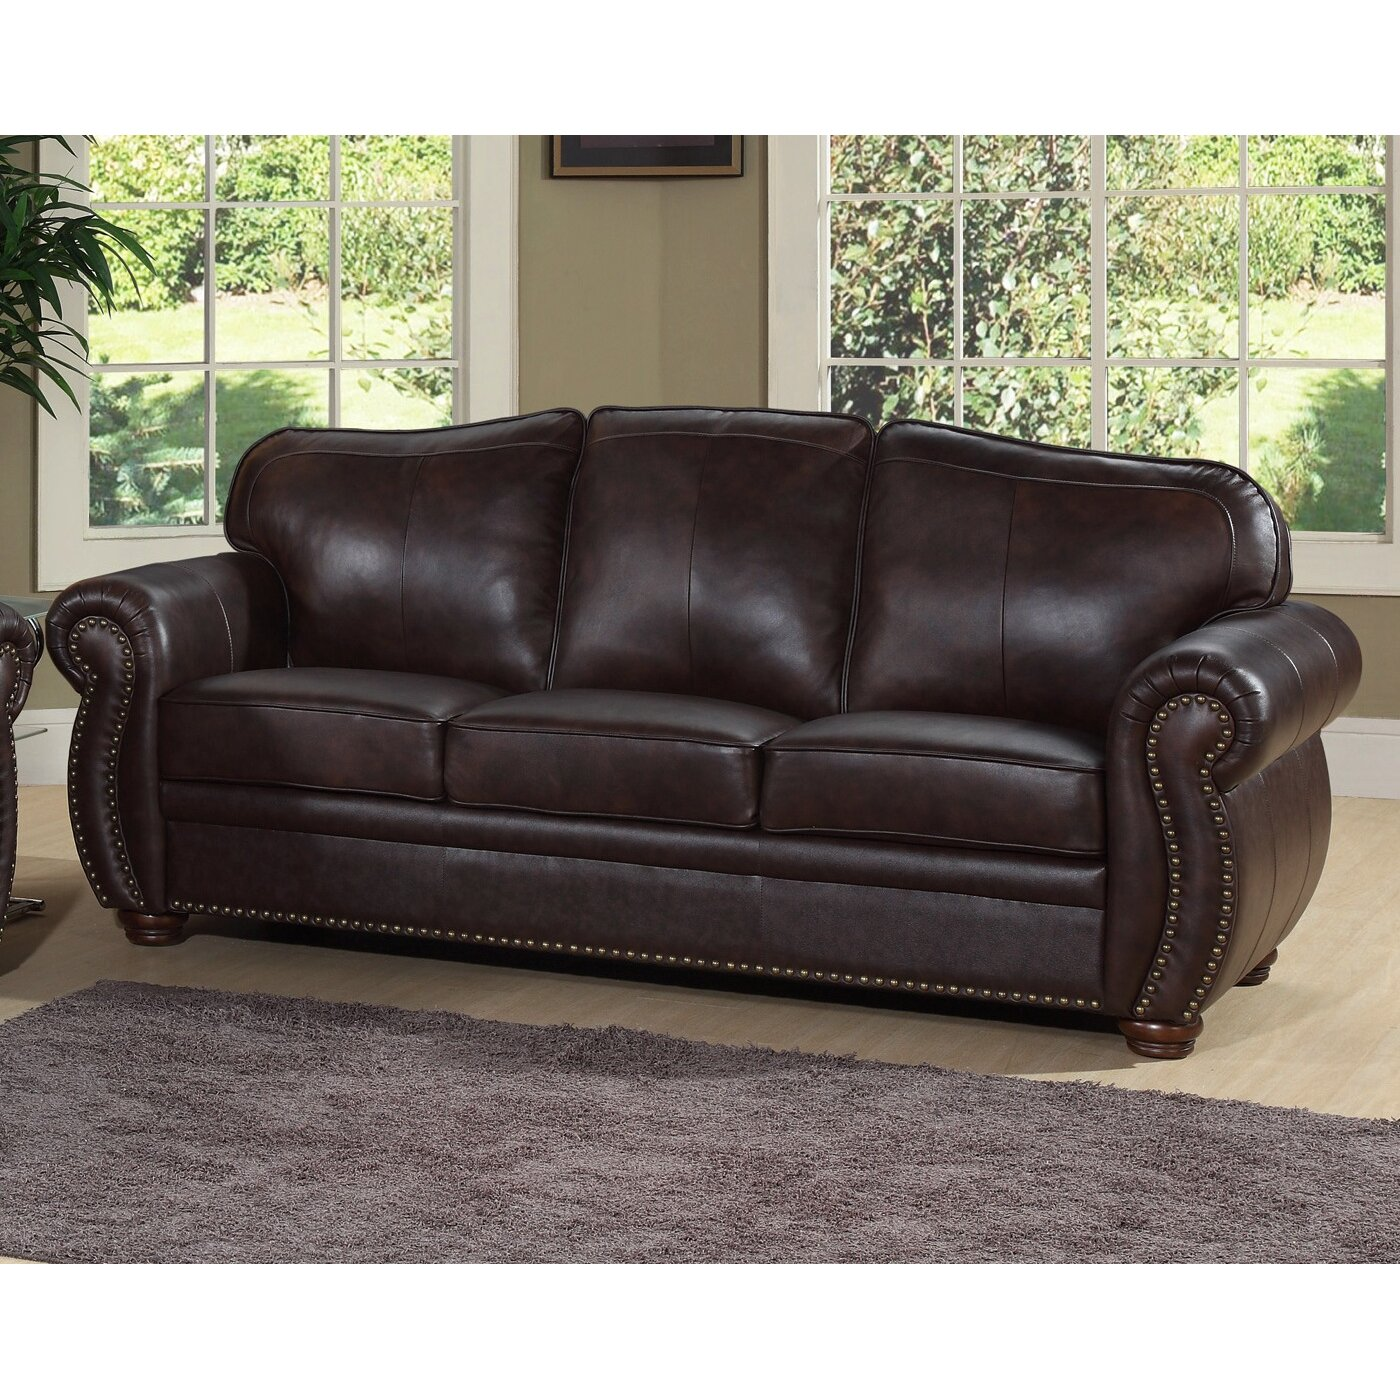 Darby home co morgenstern 3 piece leather living room set for 3 piece leather living room set